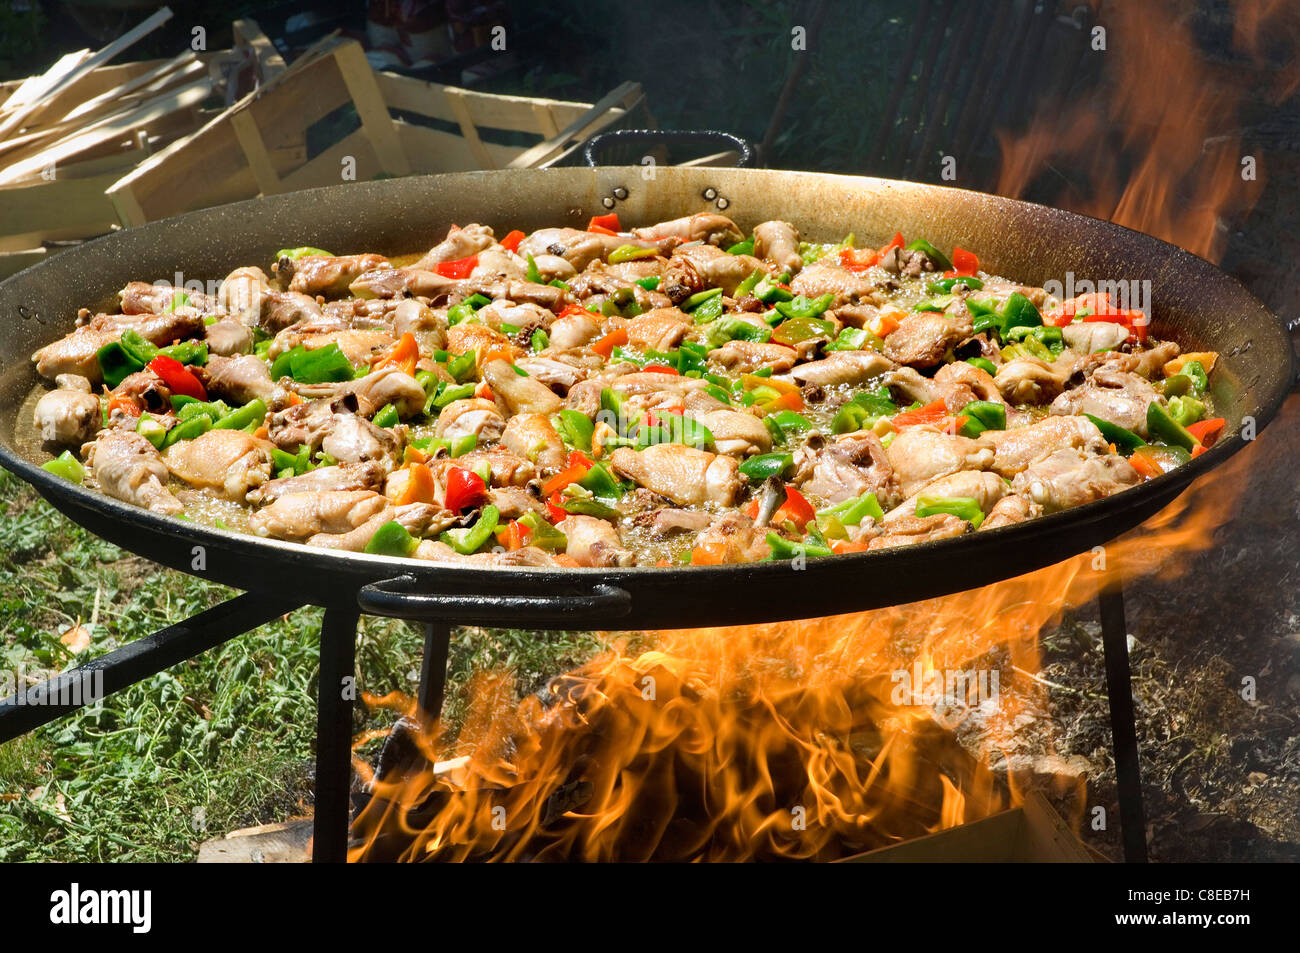 Cooking paëlla in a large dish on an open wood fire - Stock Image